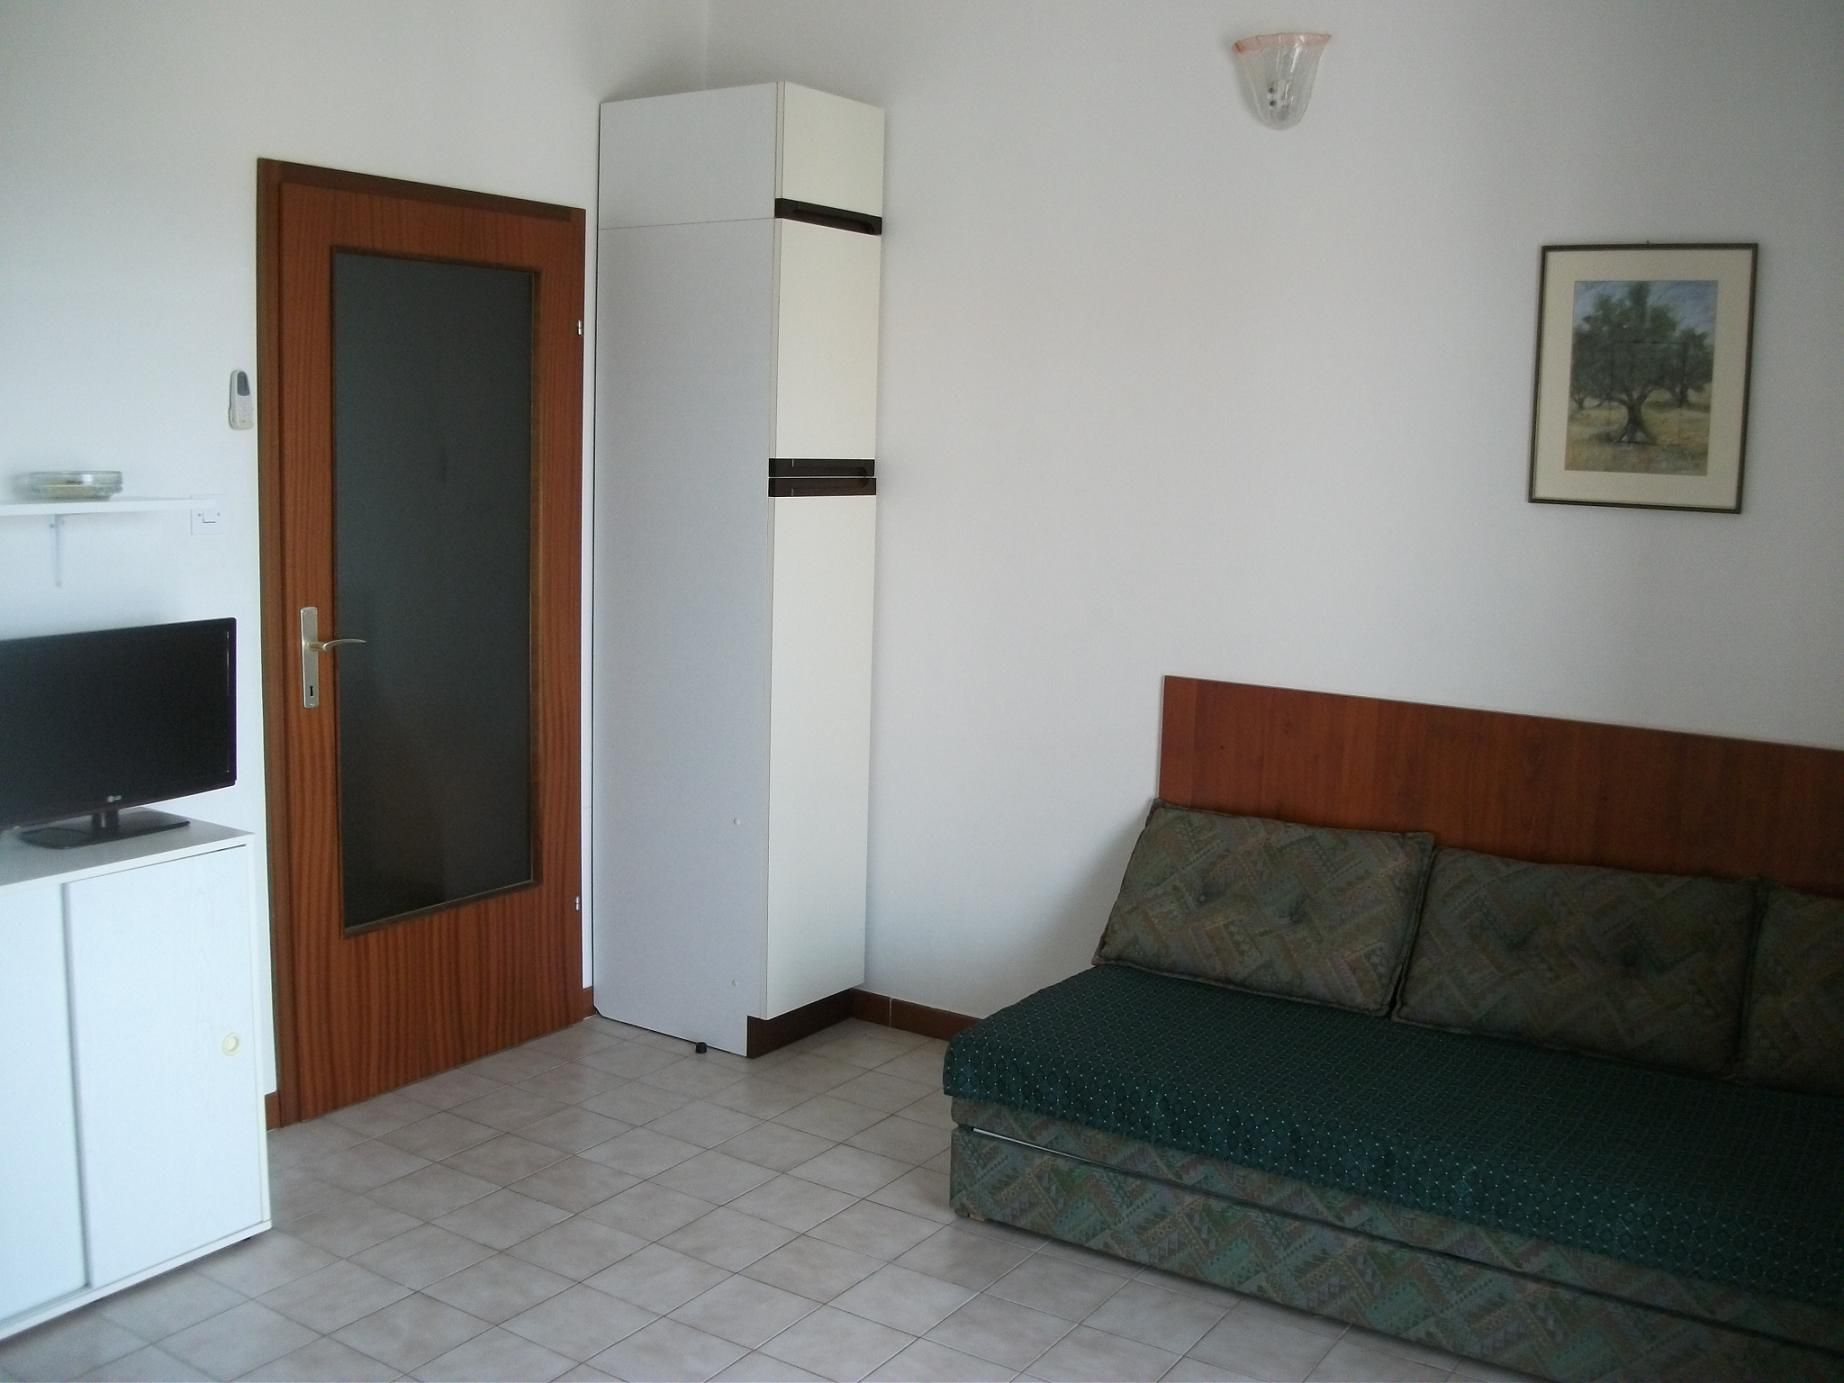 Apartments Mrak, 51 521 Punat